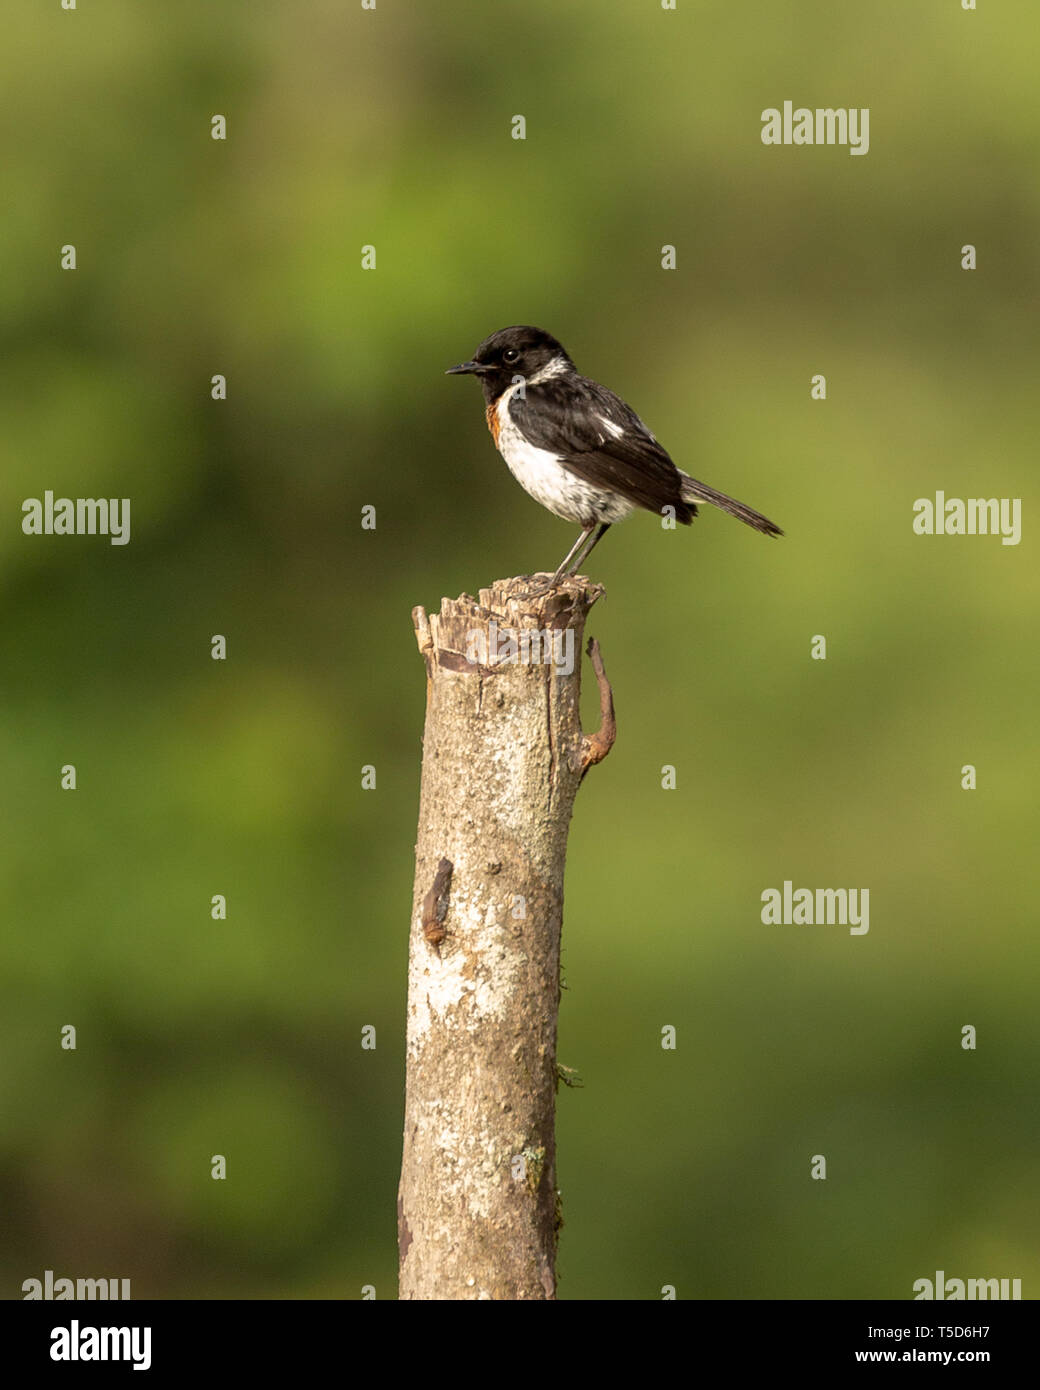 Male stonechat perched on a fence post at sunrise - Stock Image